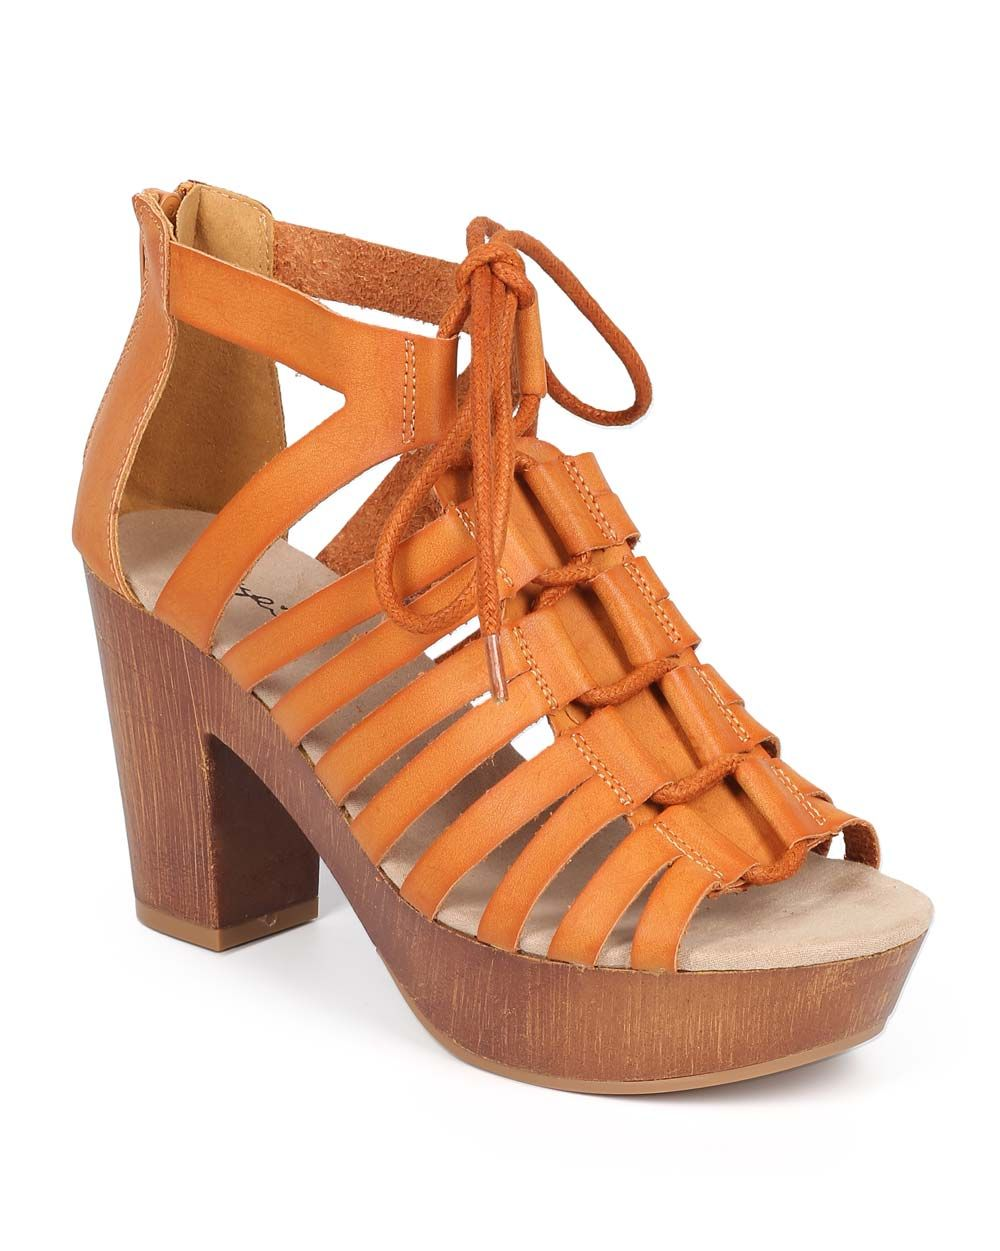 237d4cce5fdd New-Women-Qupid-Lorna-23-Leatherette-Gilly-Tie-Chunky-Heel-Gladiator-Sandal -Size